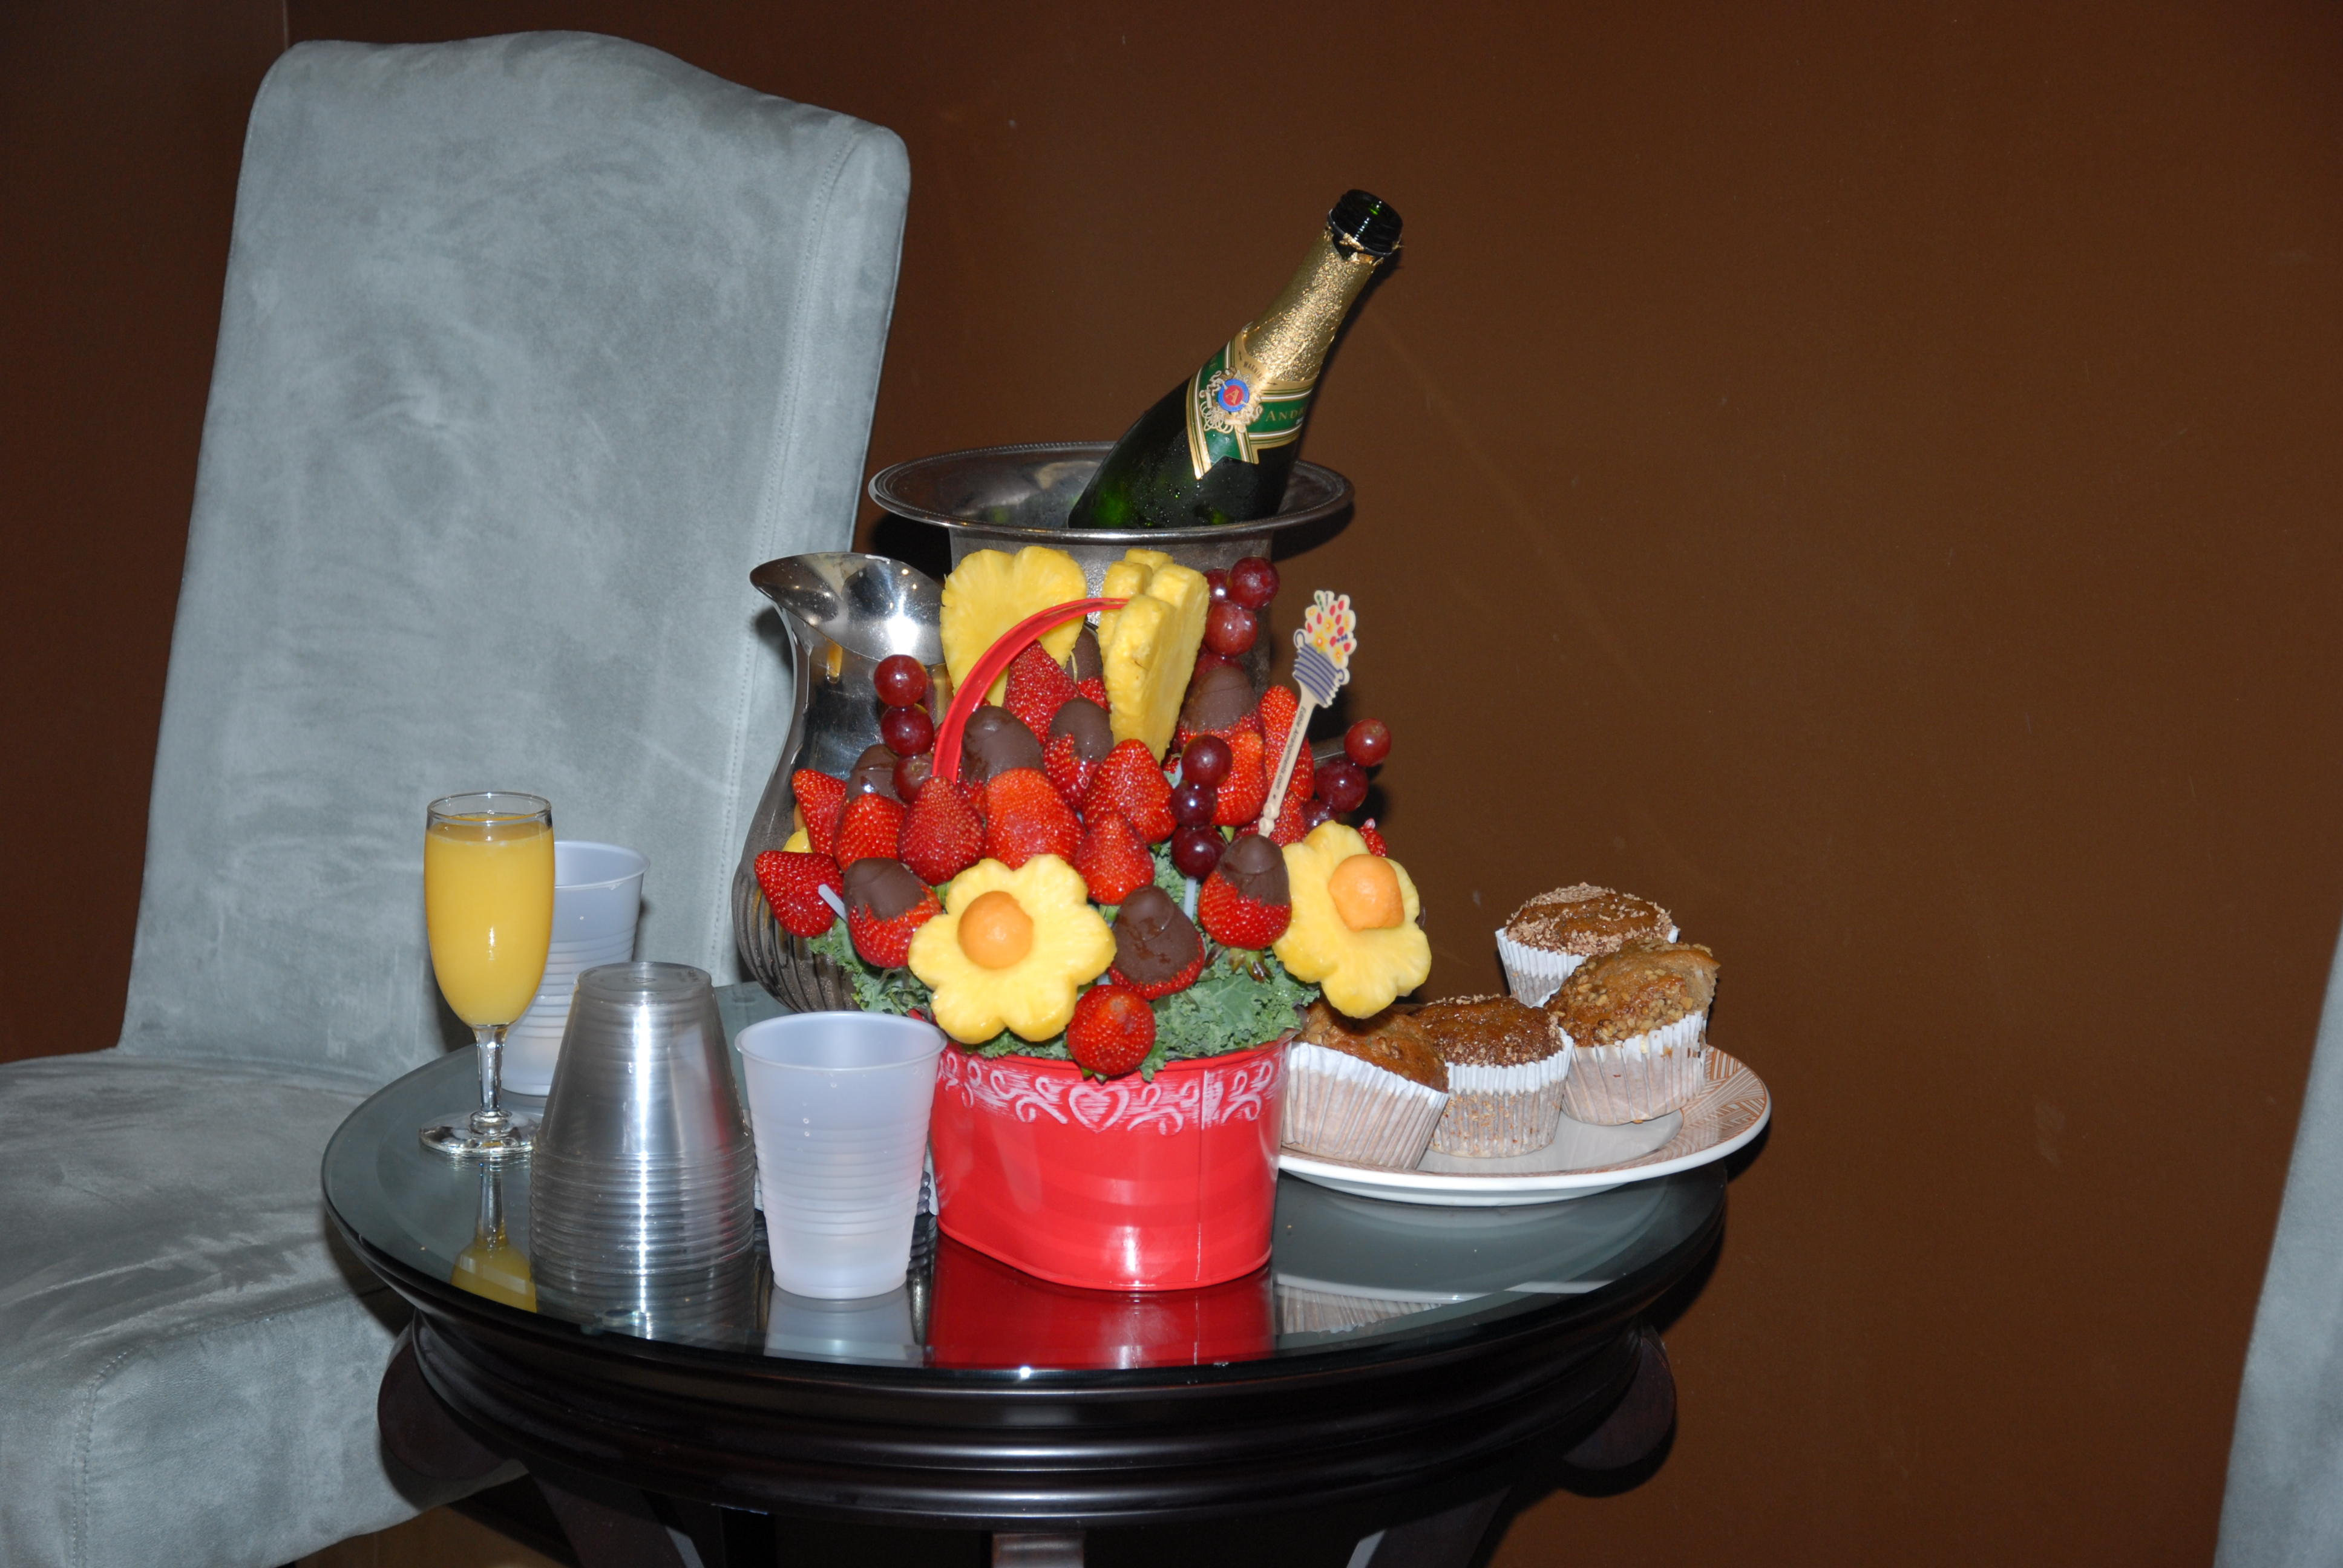 Fruit, muffins, orange juice and champagne!